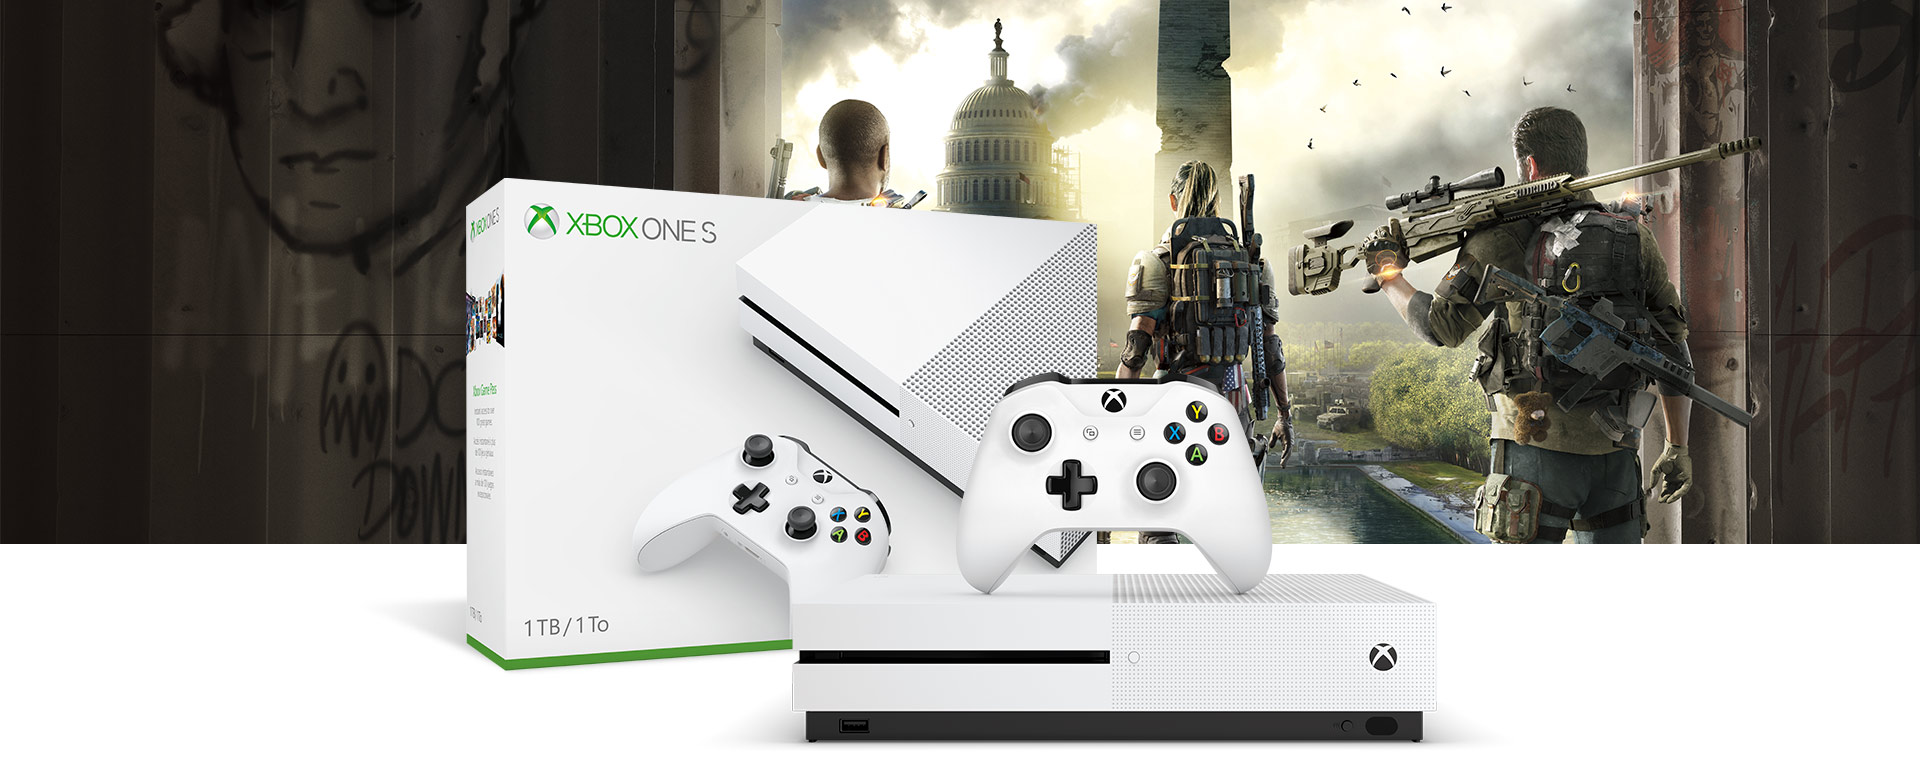 Xbox One S console in front of a hardware bundle box featuring Tom Clancy's The Division 2 art